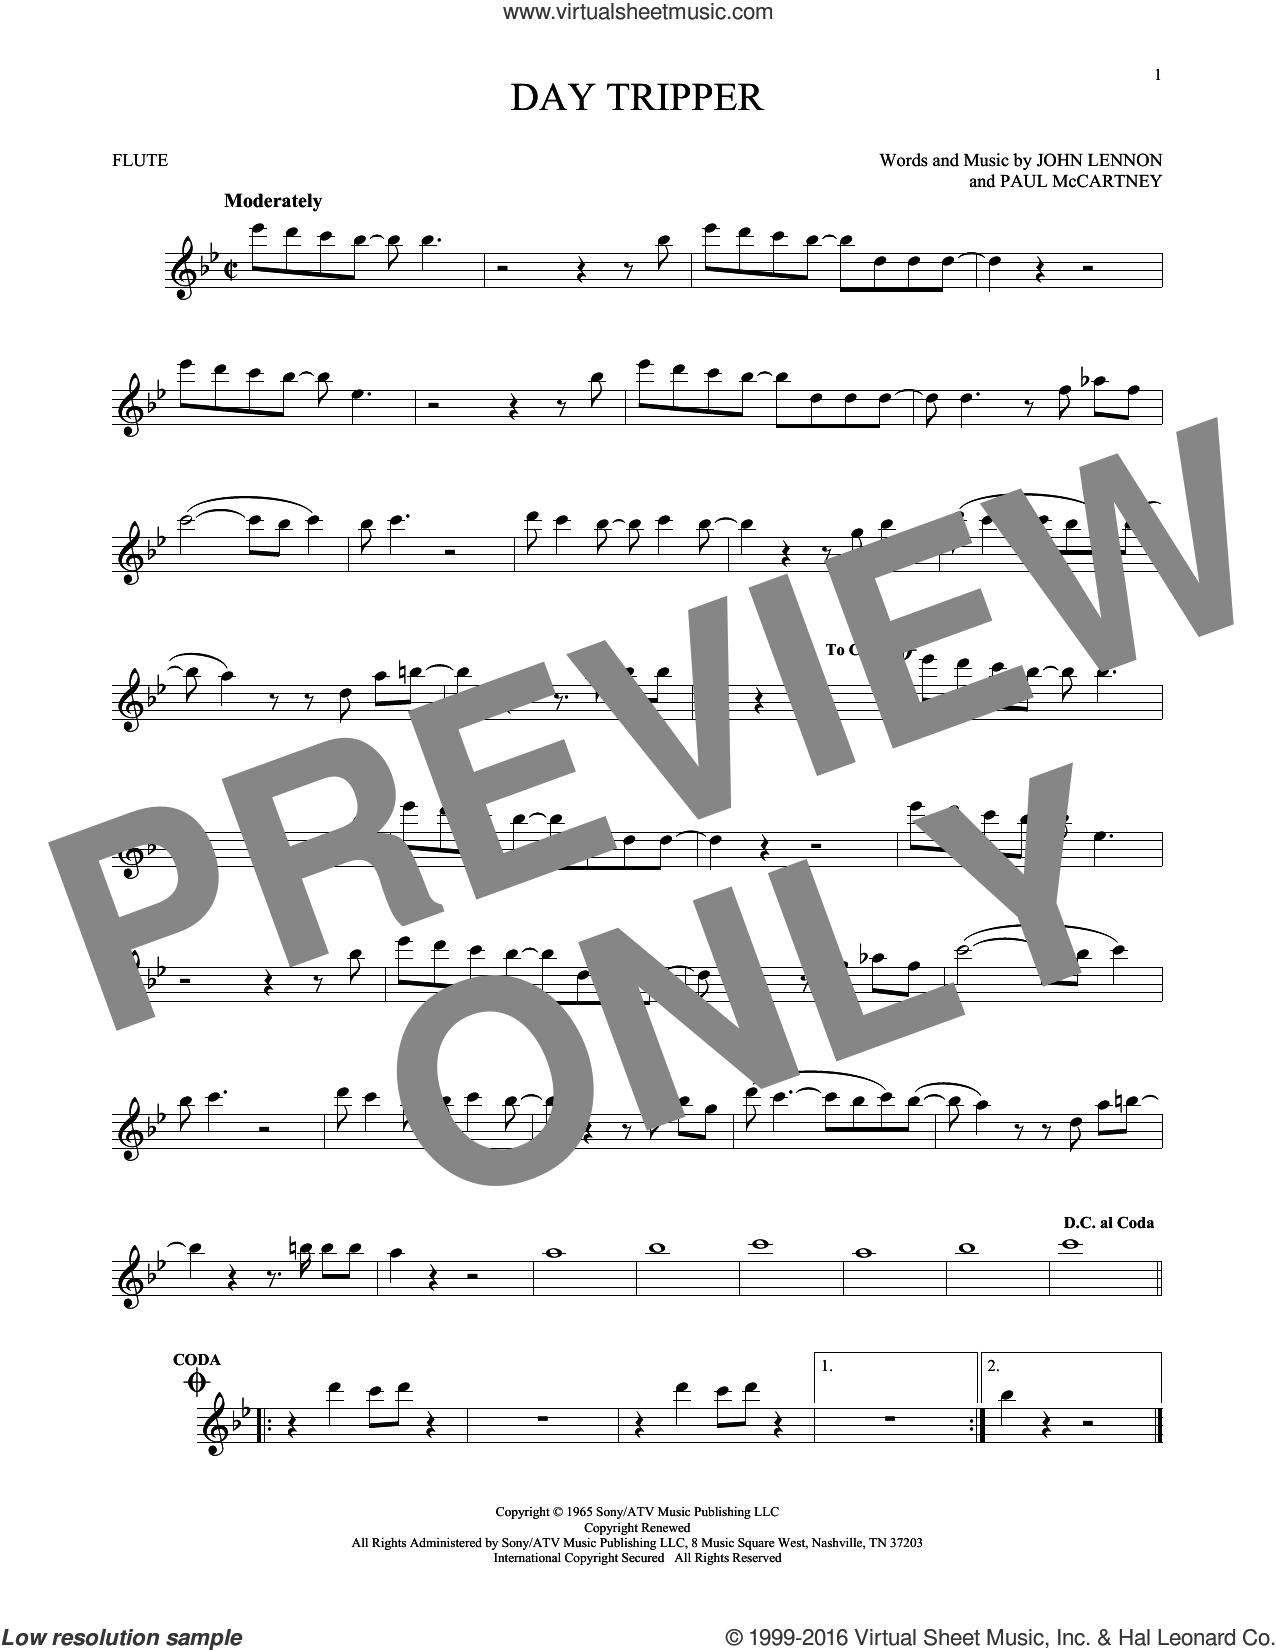 Day Tripper sheet music for flute solo by The Beatles, John Lennon and Paul McCartney. Score Image Preview.